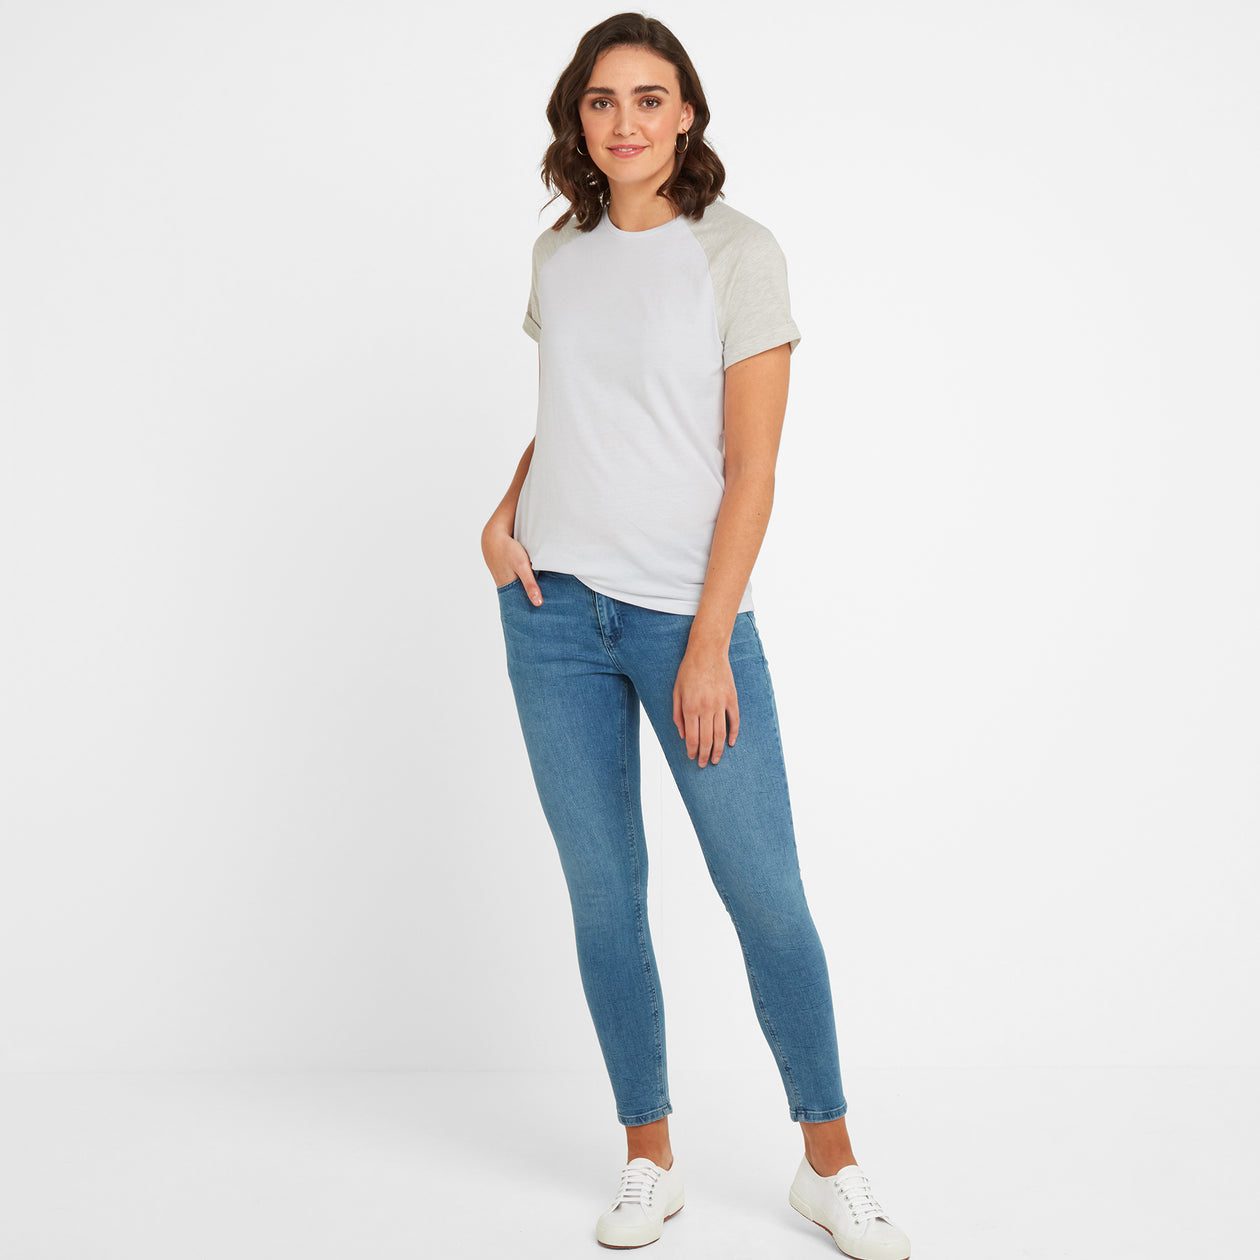 Belby Womens Raglan T-Shirt - Optic White/Oatmeal Marl image 4